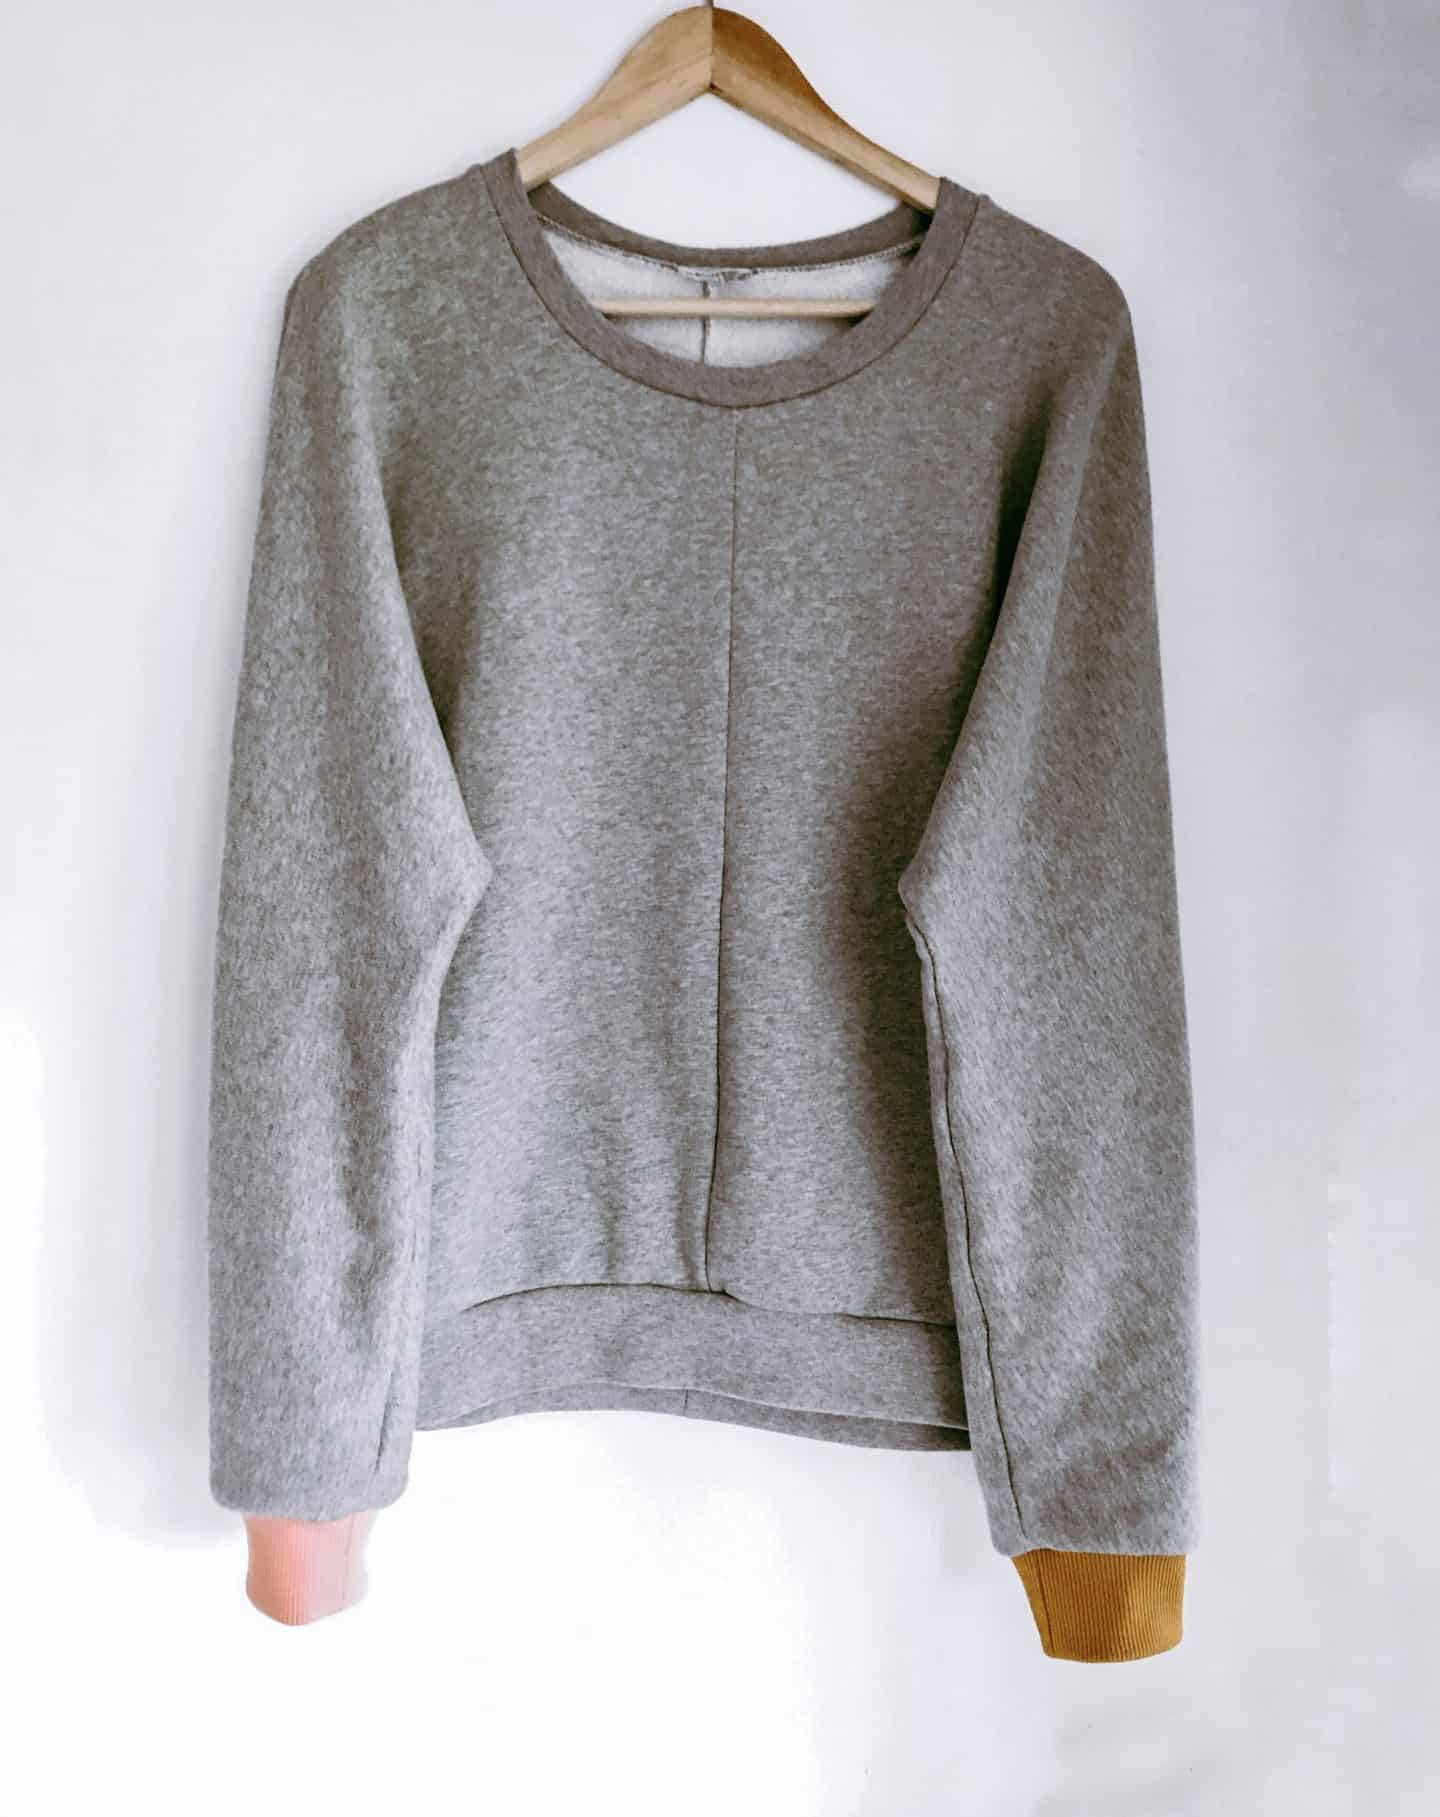 With Narrative organic grey marl sweatshirt with pink and mustard yellow cuffs